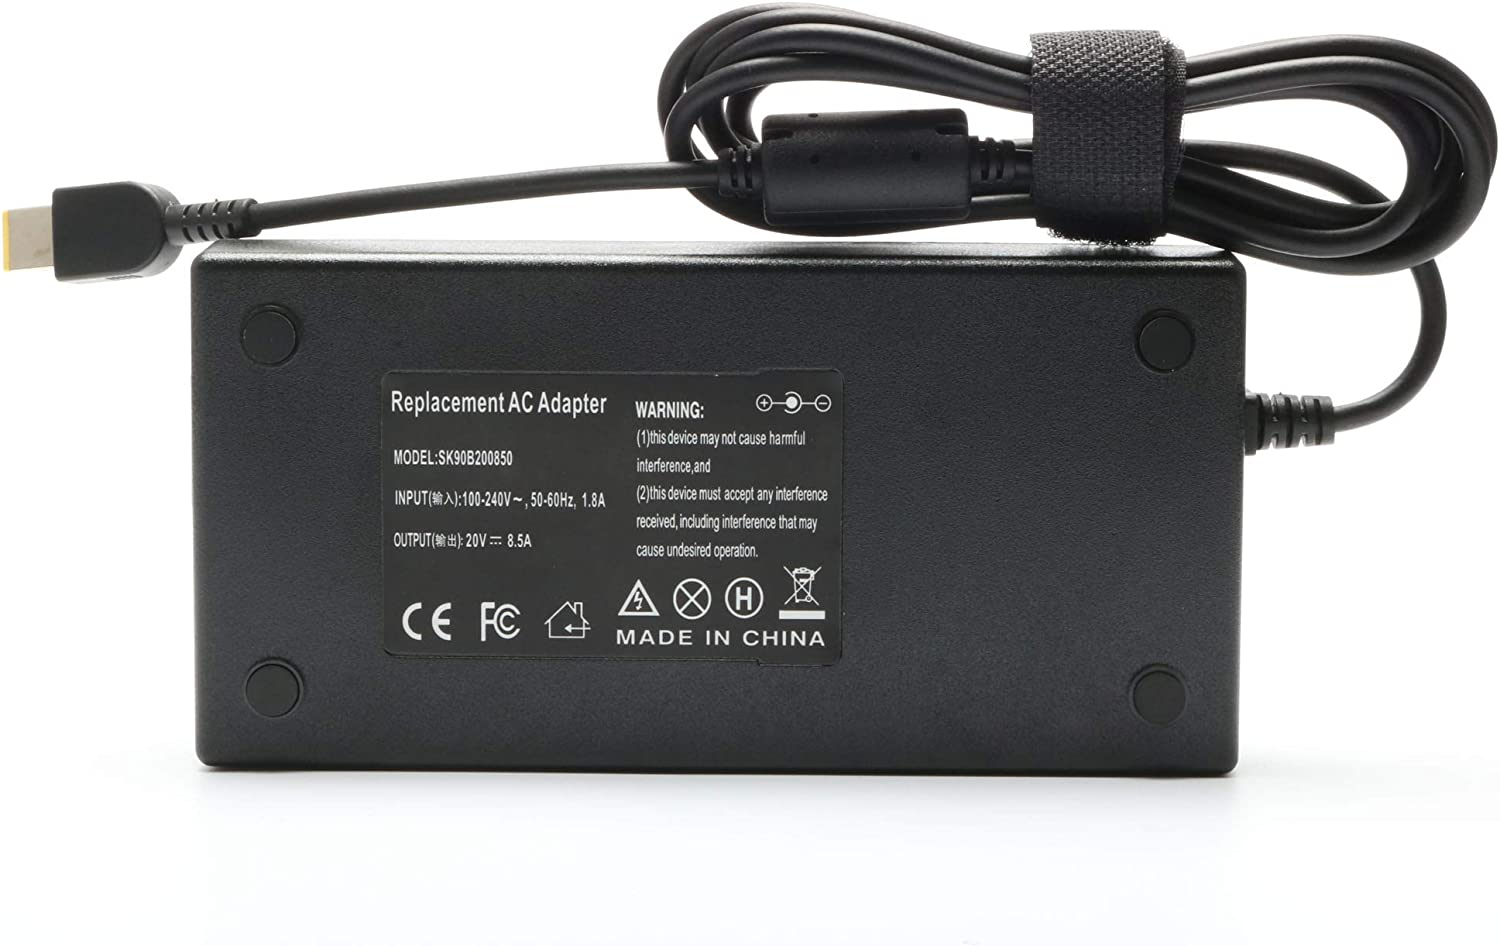 New 170W Power Adapter Charger Replacement for Lenovo Thinkpad W540 W541 P50 P51 P52 Legion Y520 Y530 Y720 Y5000 Y7000 Y7000P 4X20E50574 ADL170NLC2A Laptop